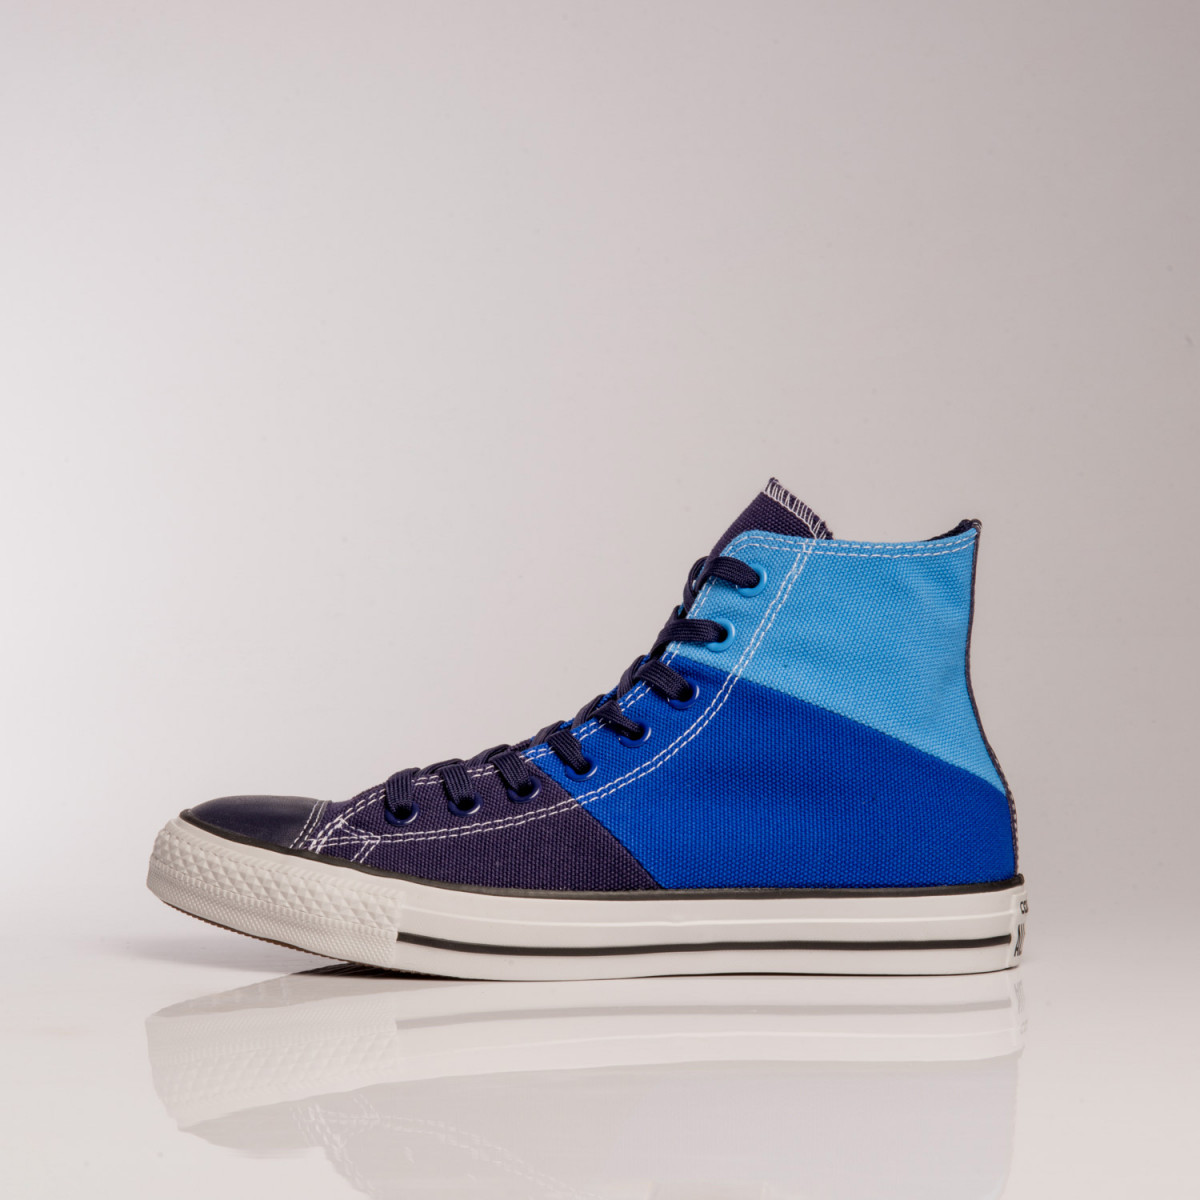 ZAPATILLAS CONVERSE CT ALL STAR TRI-PANEL DOZAR